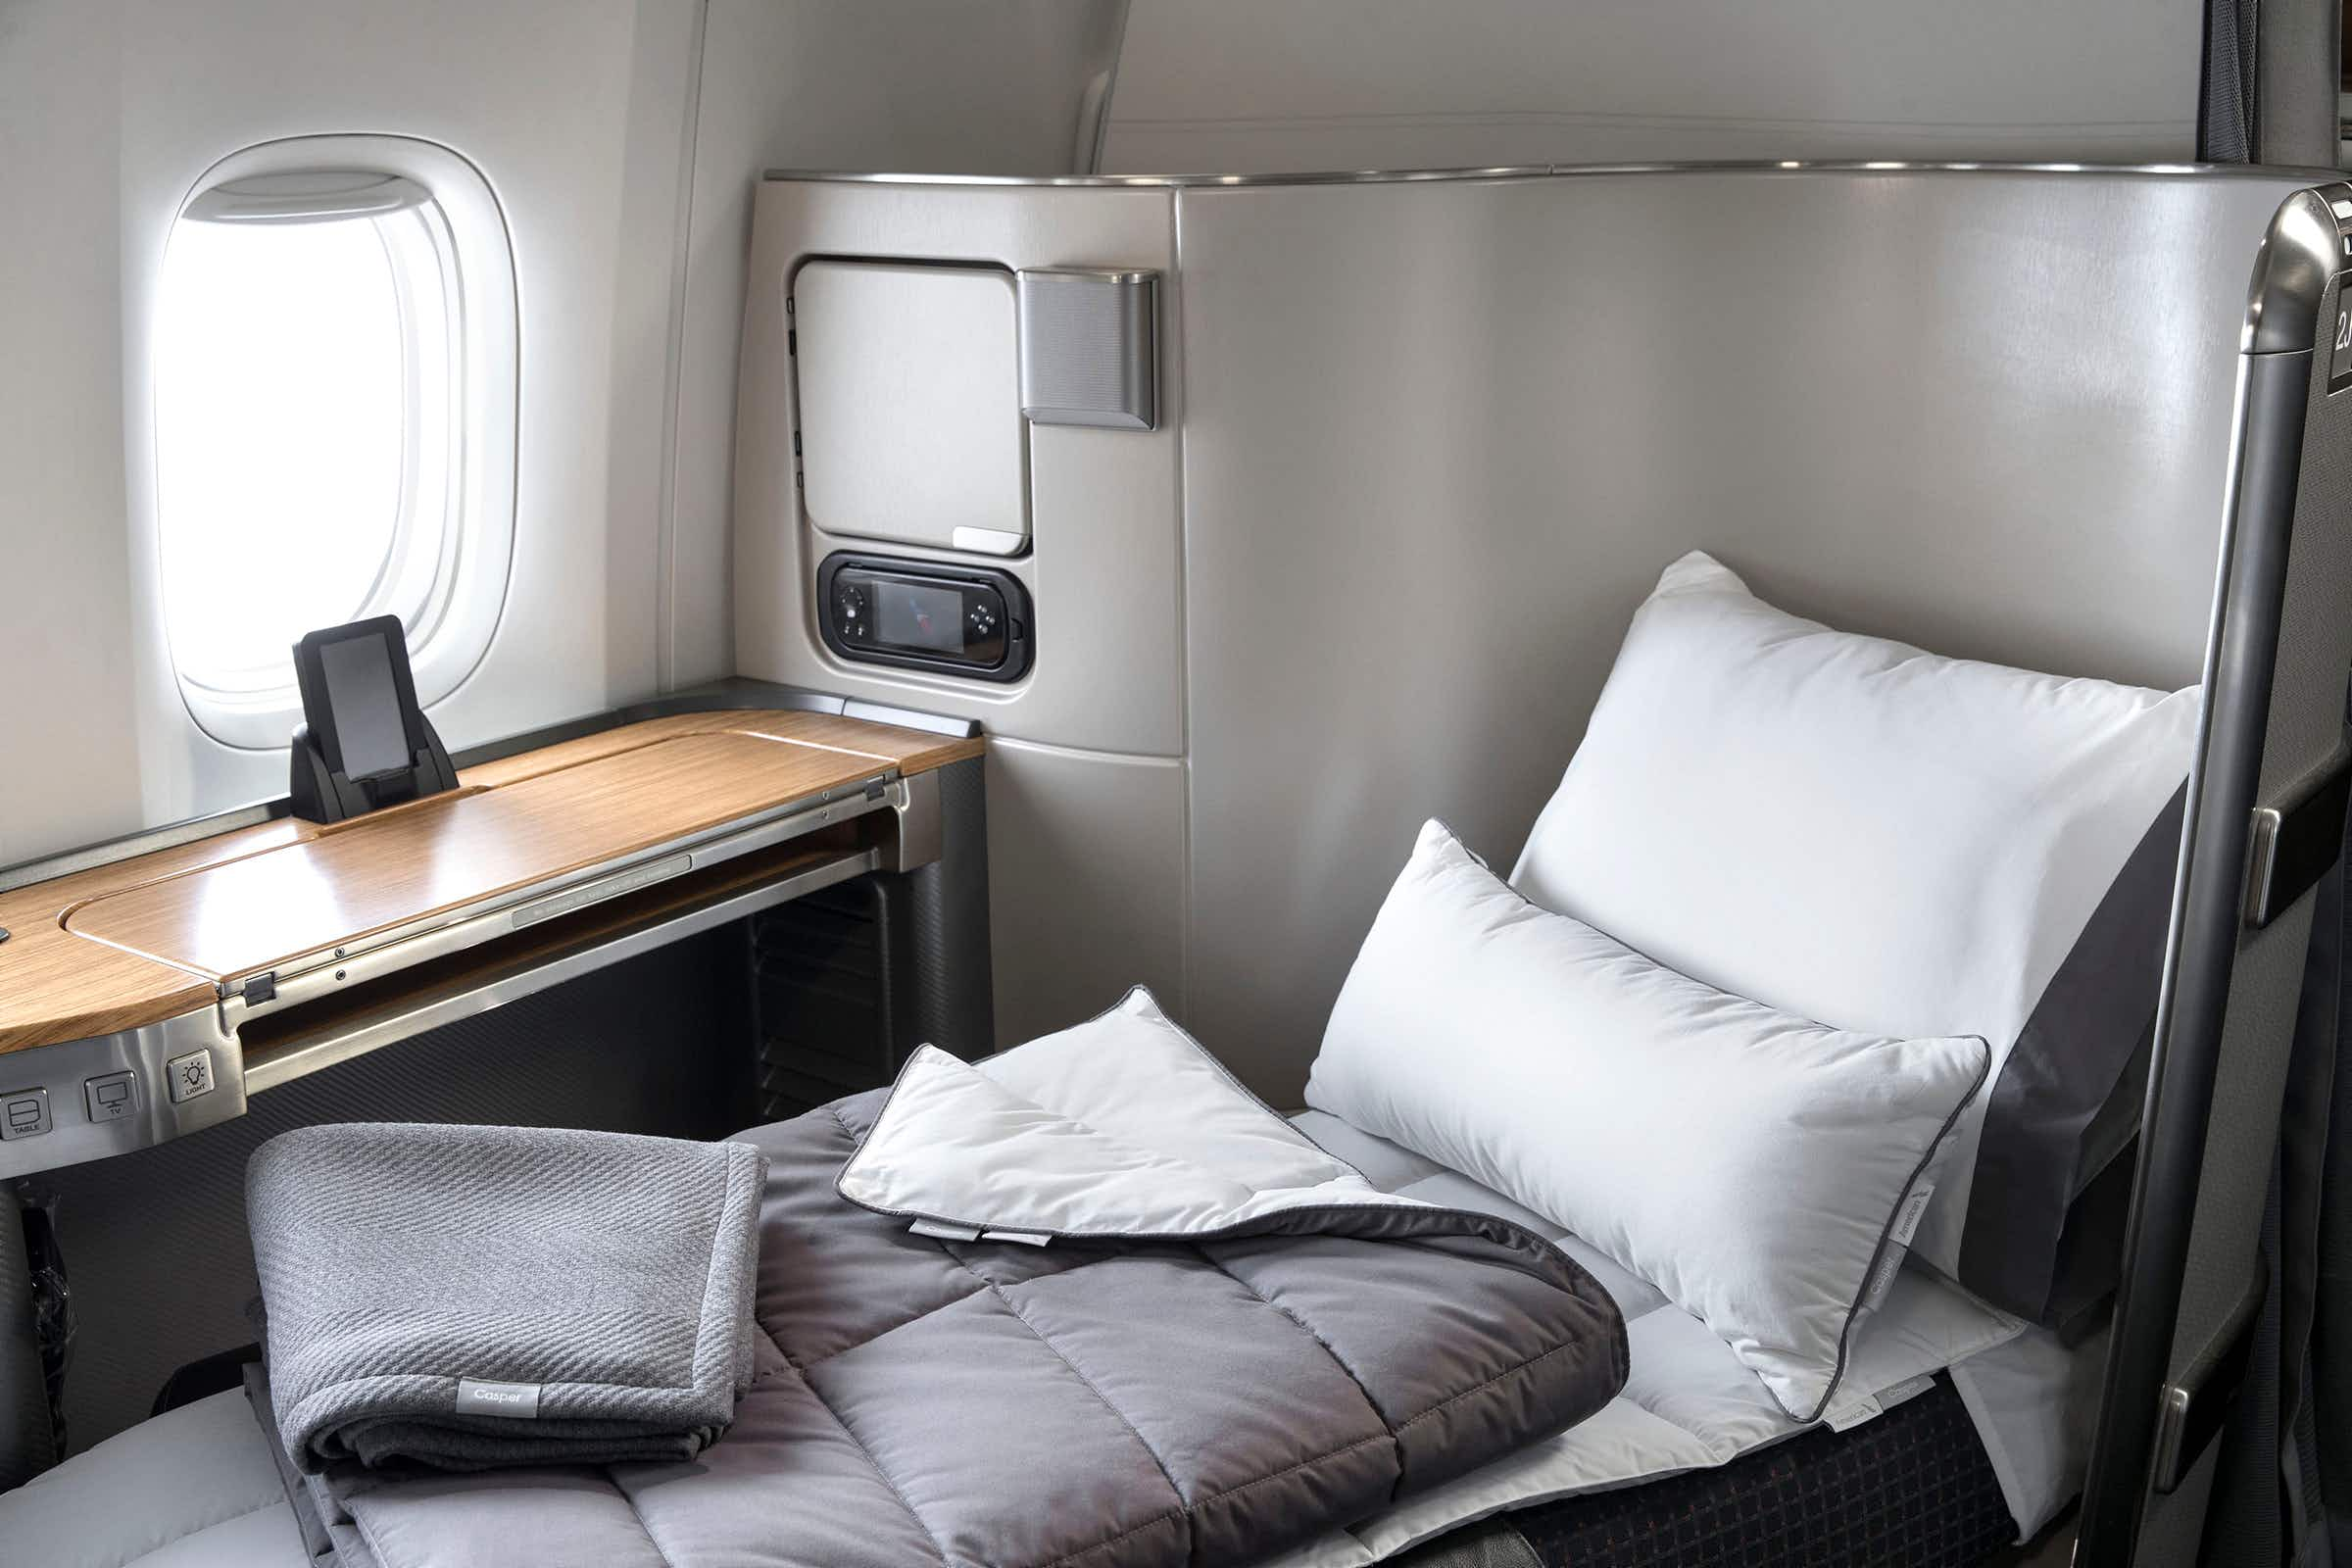 American Airlines is bringing game-changing bedding to the skies